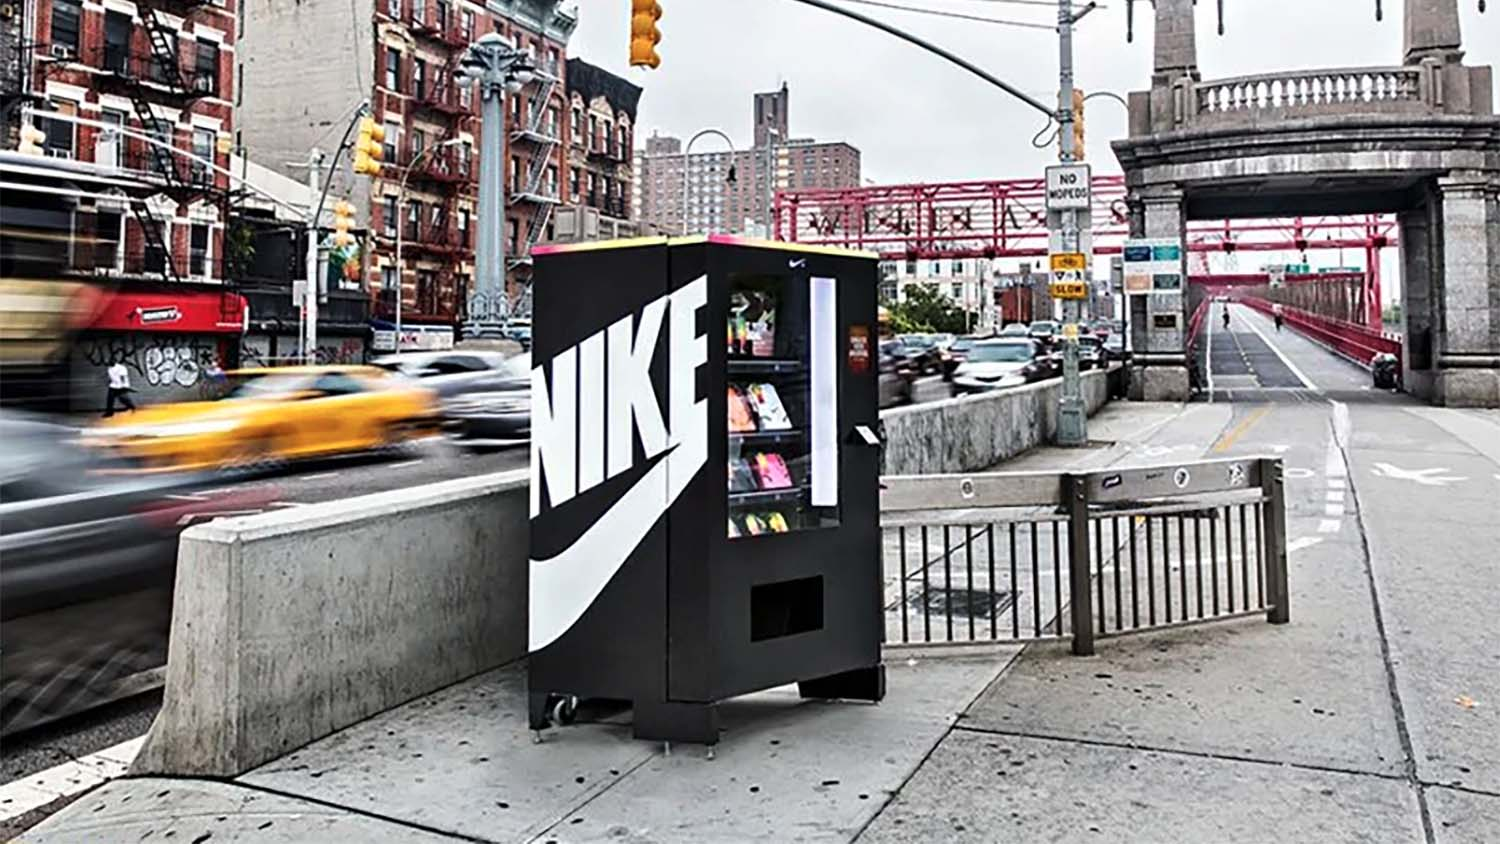 JULY 25, 2014 NIKE VENDING MACHINE FEATURED IMAGE